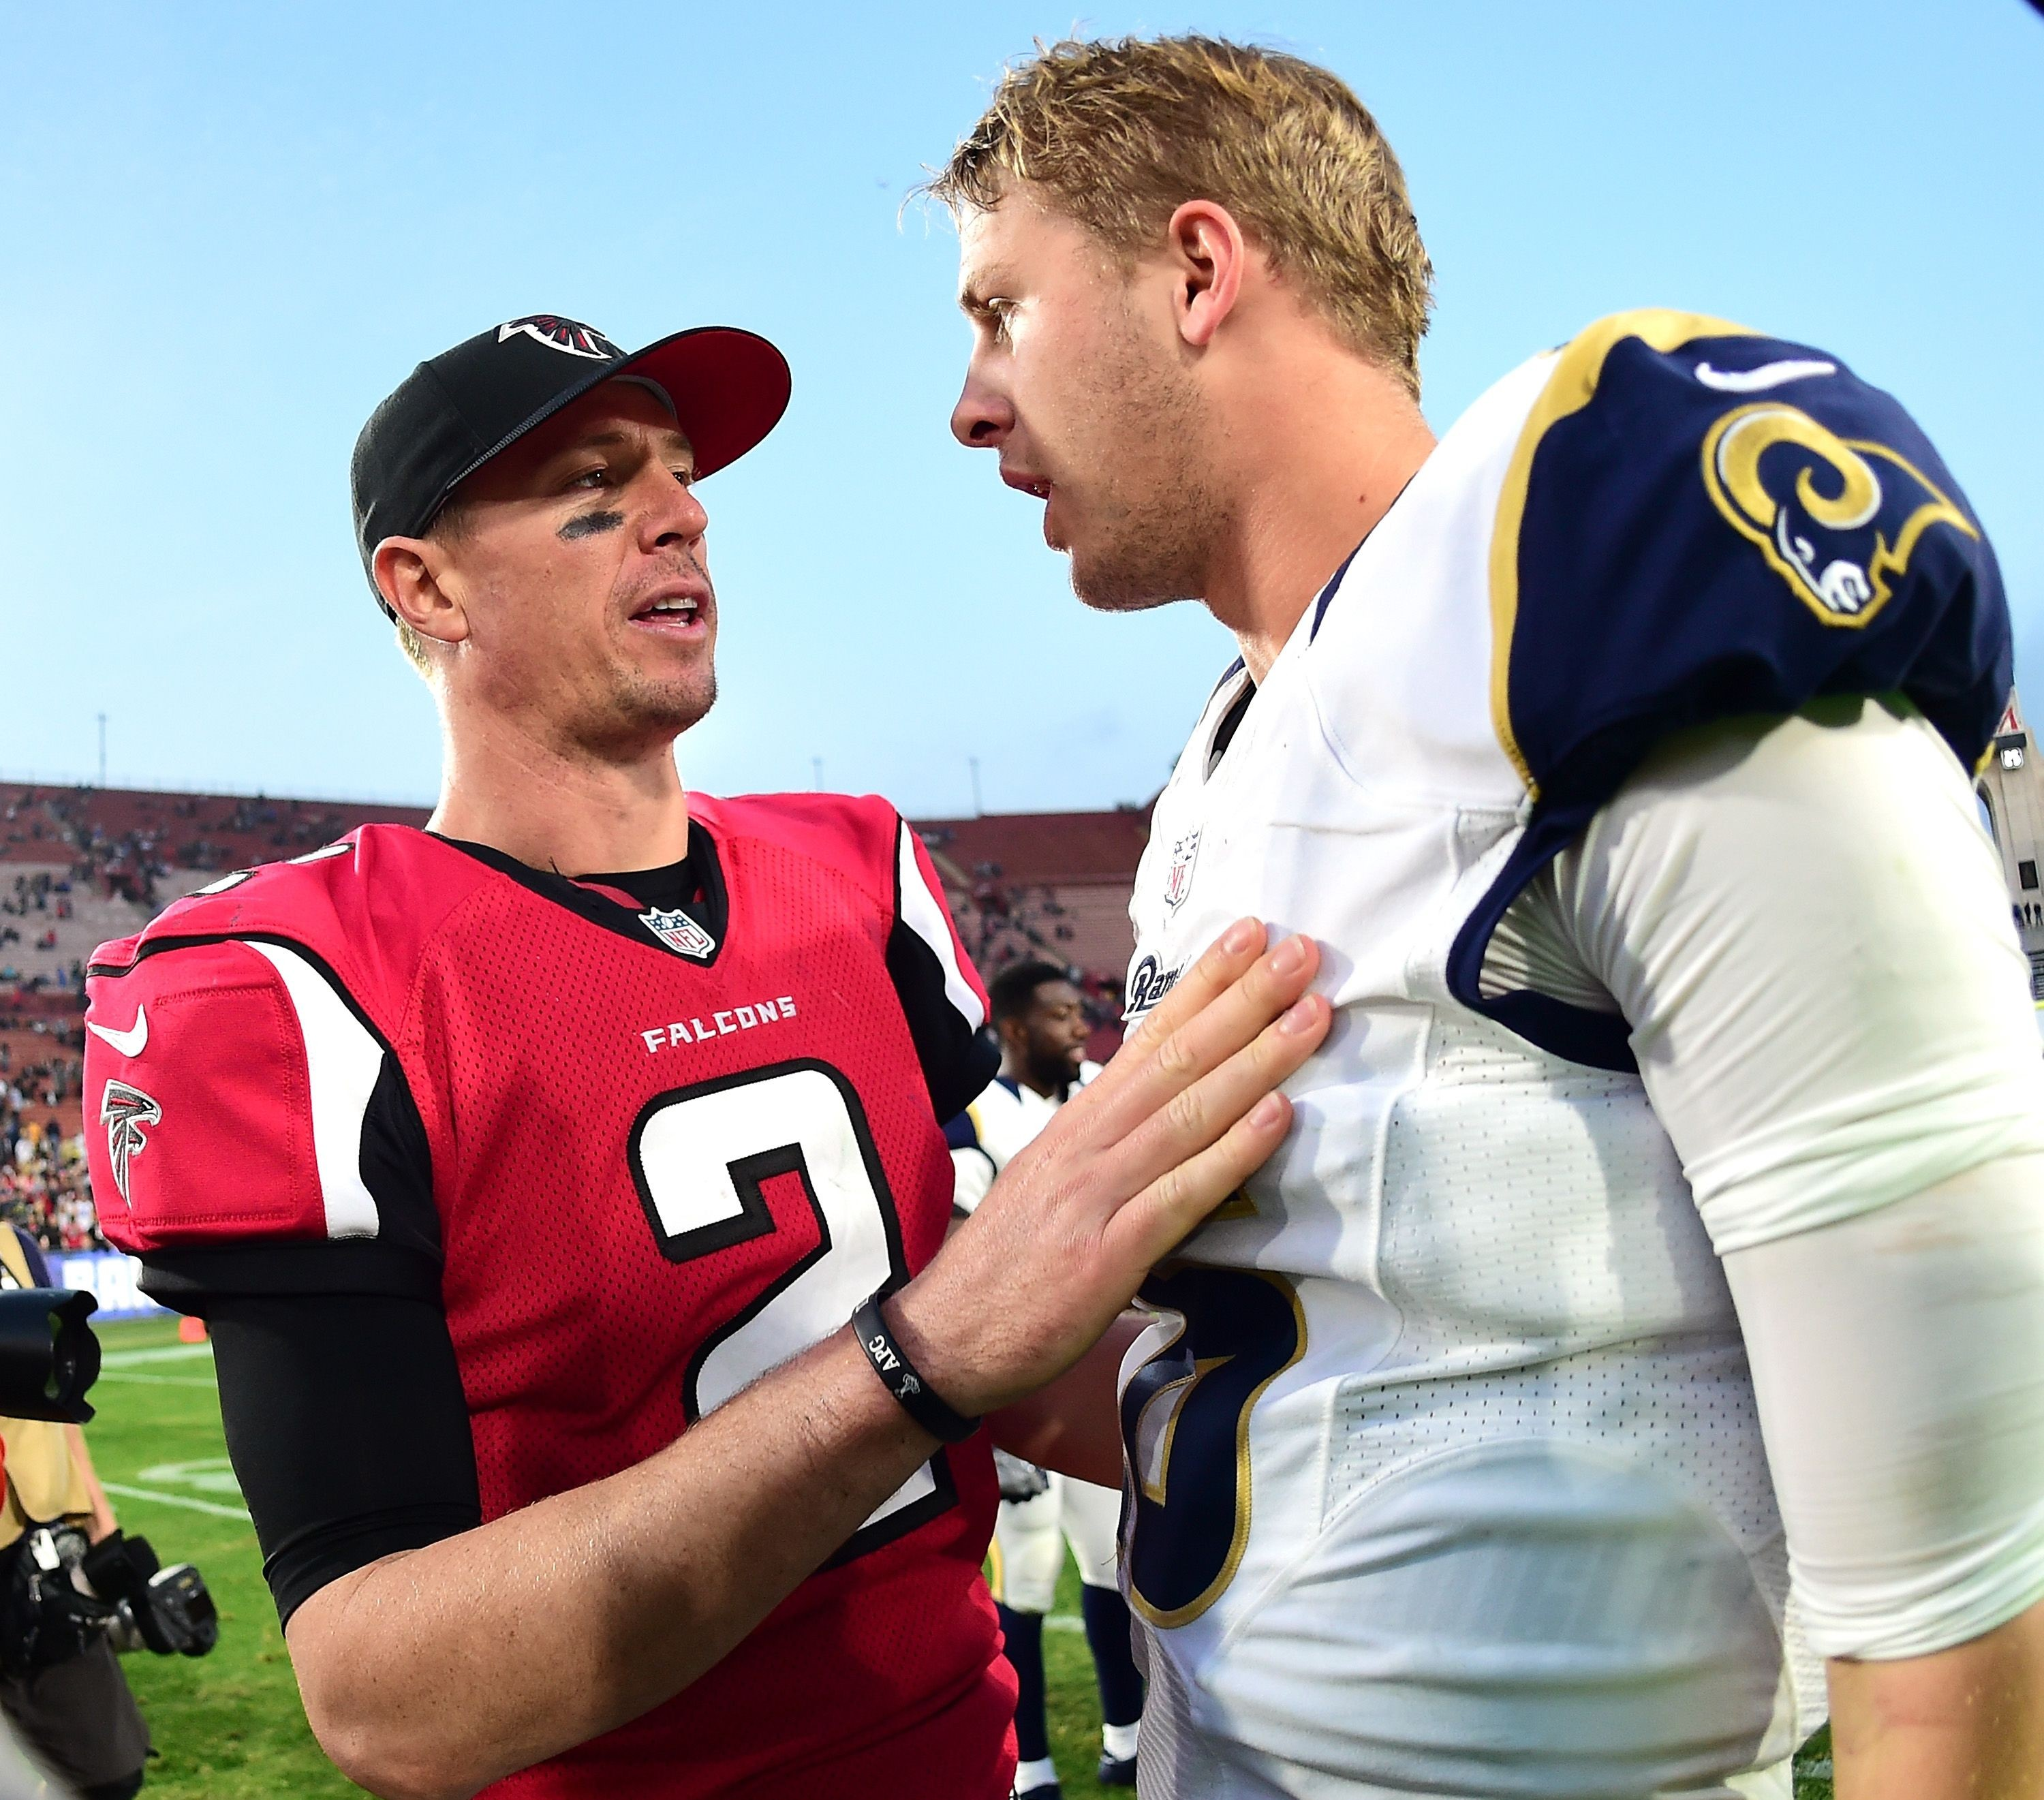 Atlanta Falcons Vs L.A. Rams: Wild Card Live Stream, Game Info